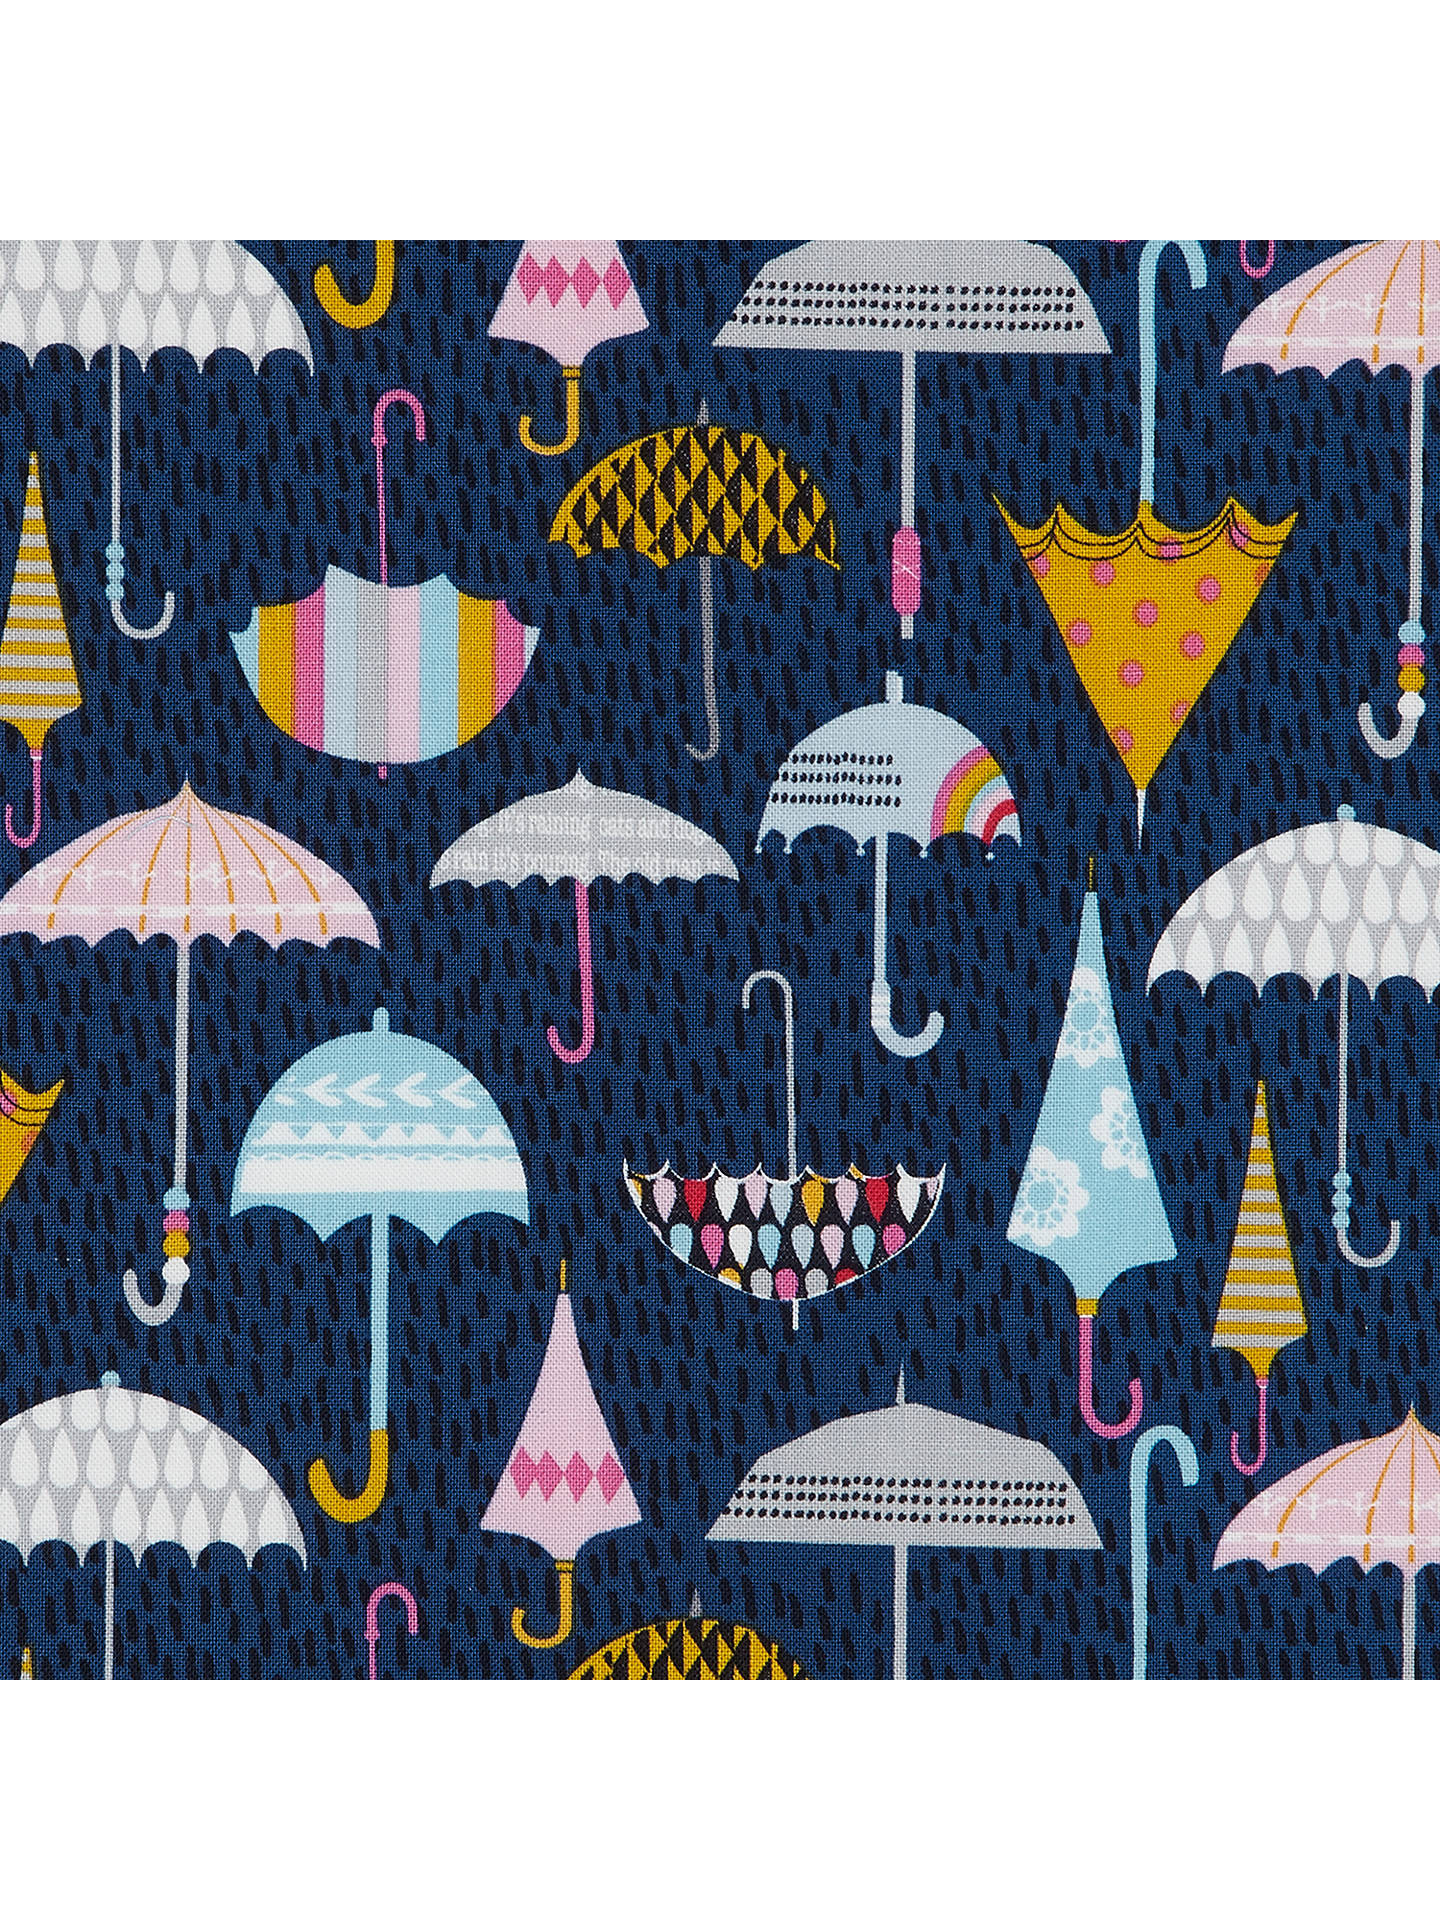 graphic about Umbrella Pattern Printable referred to as Dashwood Umbrella Print Cloth, Armed forces at John Lewis Associates